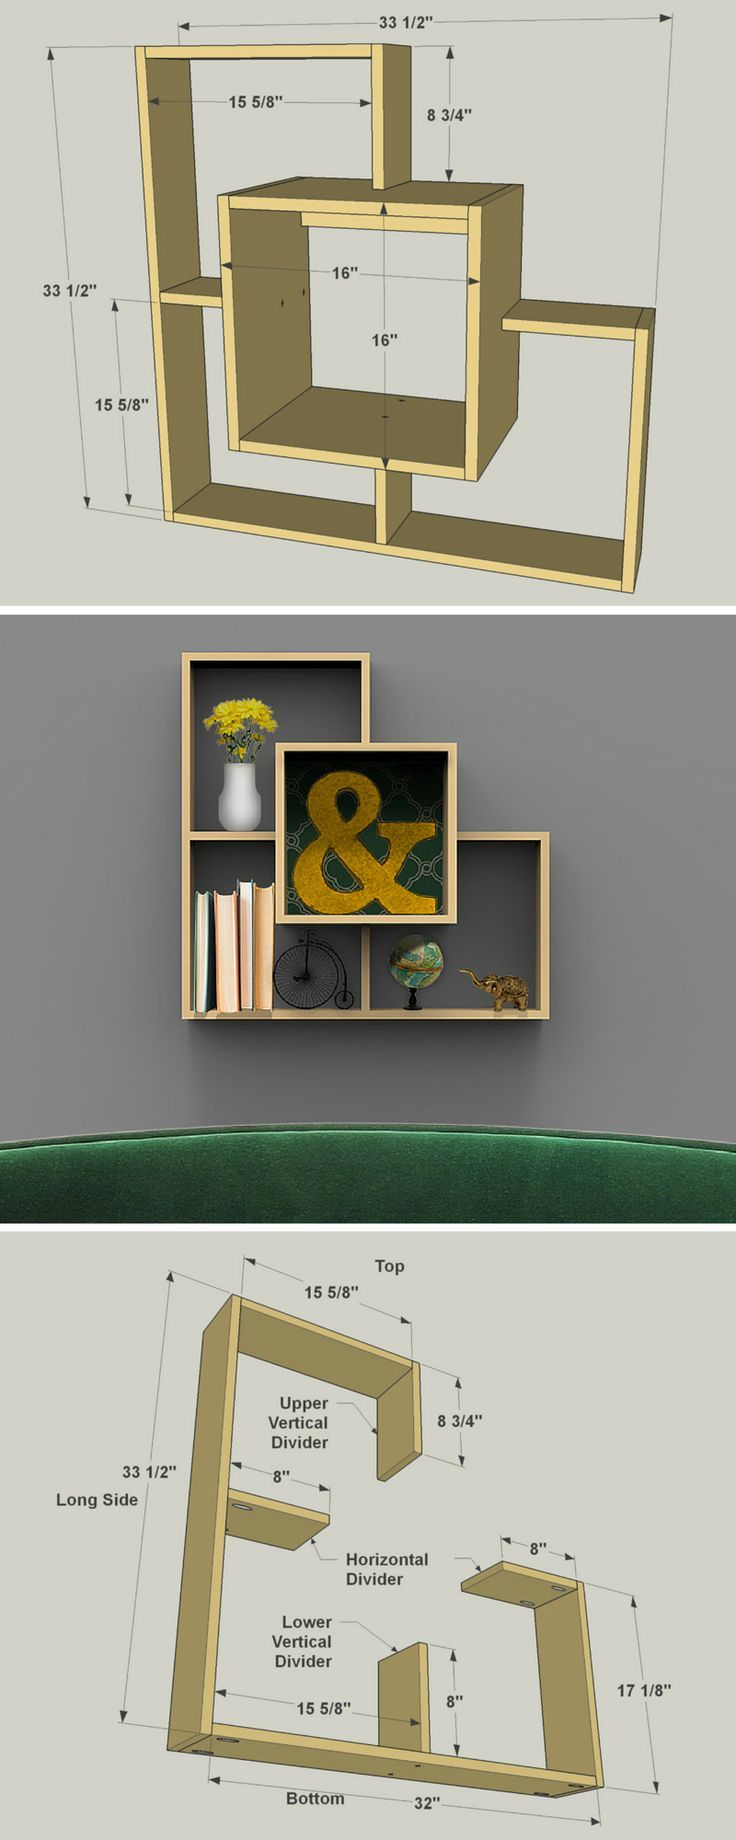 If you're looking for a unique way to display some of your favorite things, you'll want to check out this different twist on the traditional display shelf. It has a deep inner box that's partially surrounded by a shallower out box. That outer box has its own sections, creating a unique look. FREE PLANS at http://buildsomething.com #woodworking